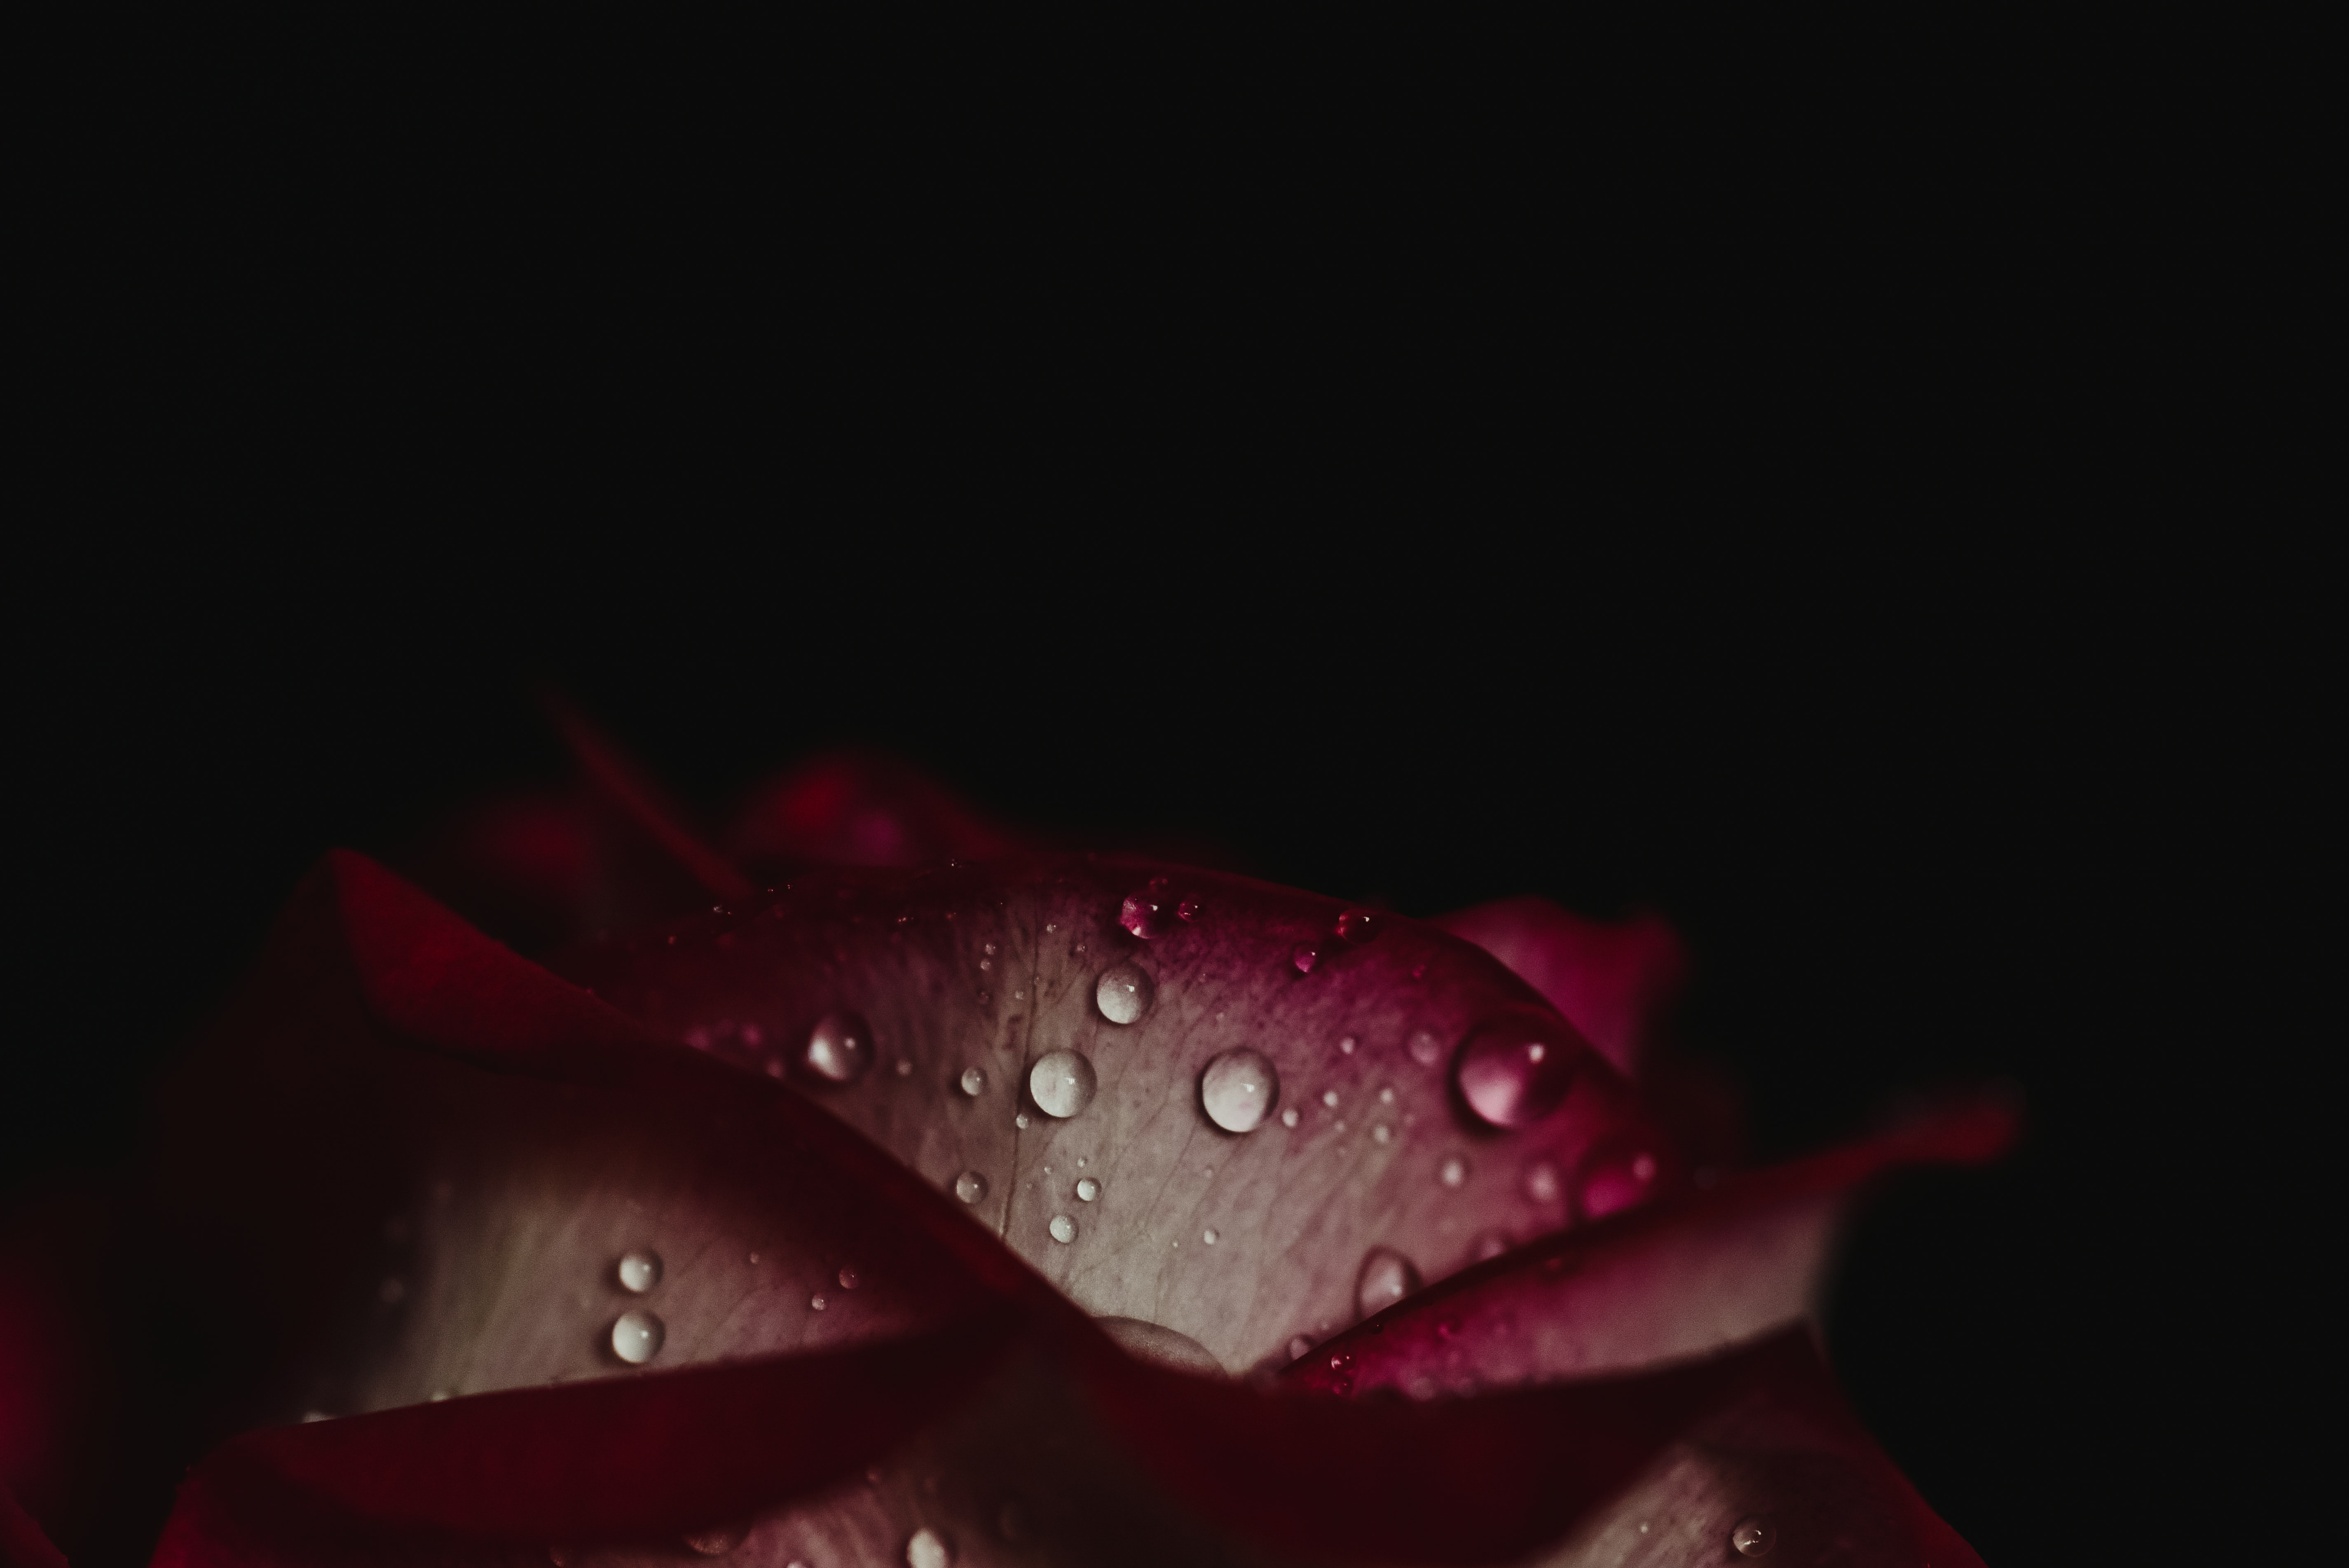 pink and white flower with water droplets